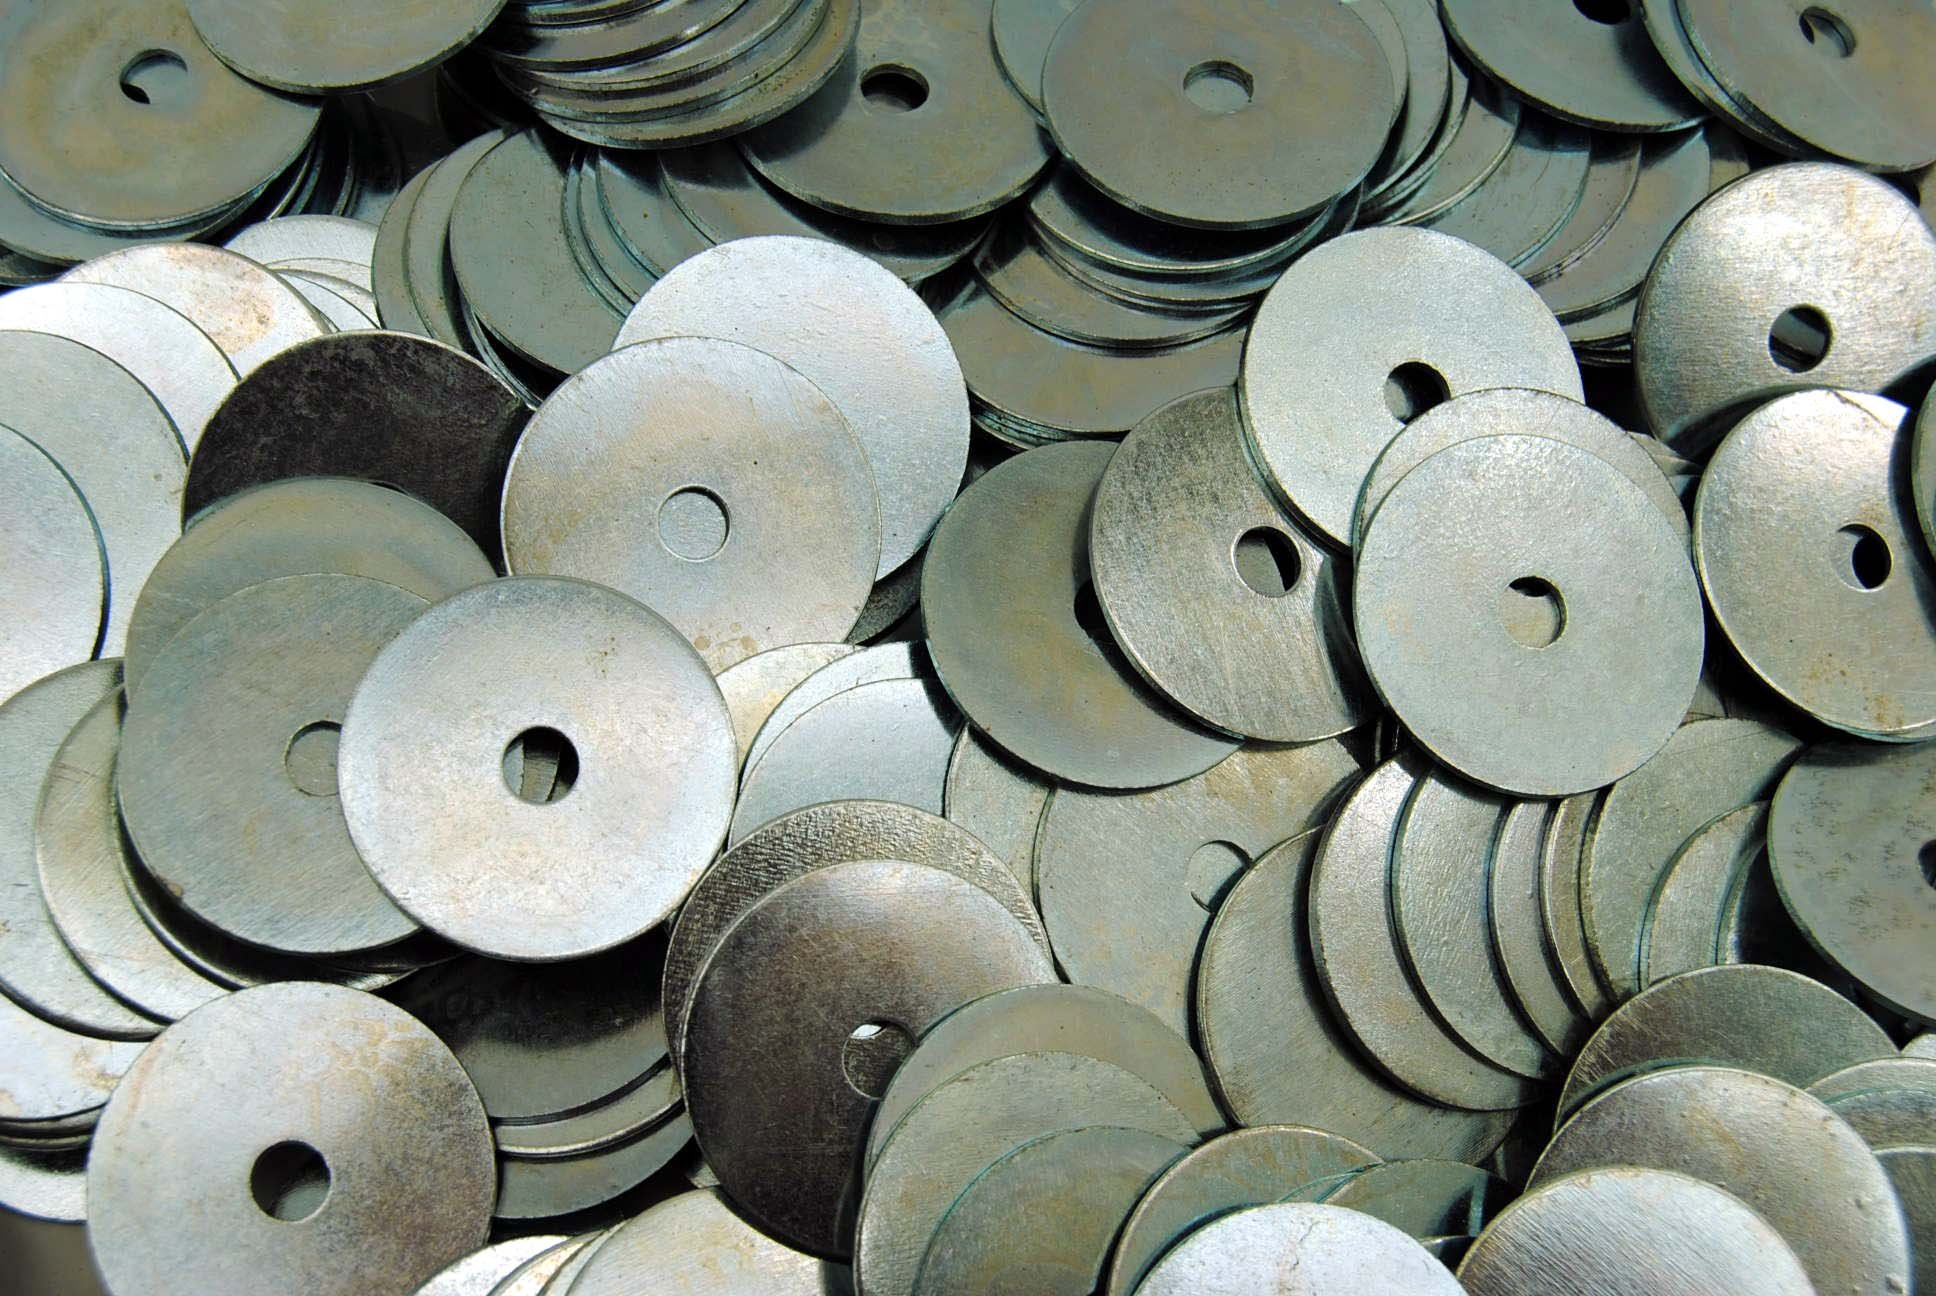 (300) Oversized Fender Washers 1/4 x 1-1/2 OD - Zinc Plated by Lexar Industrial (Image #1)